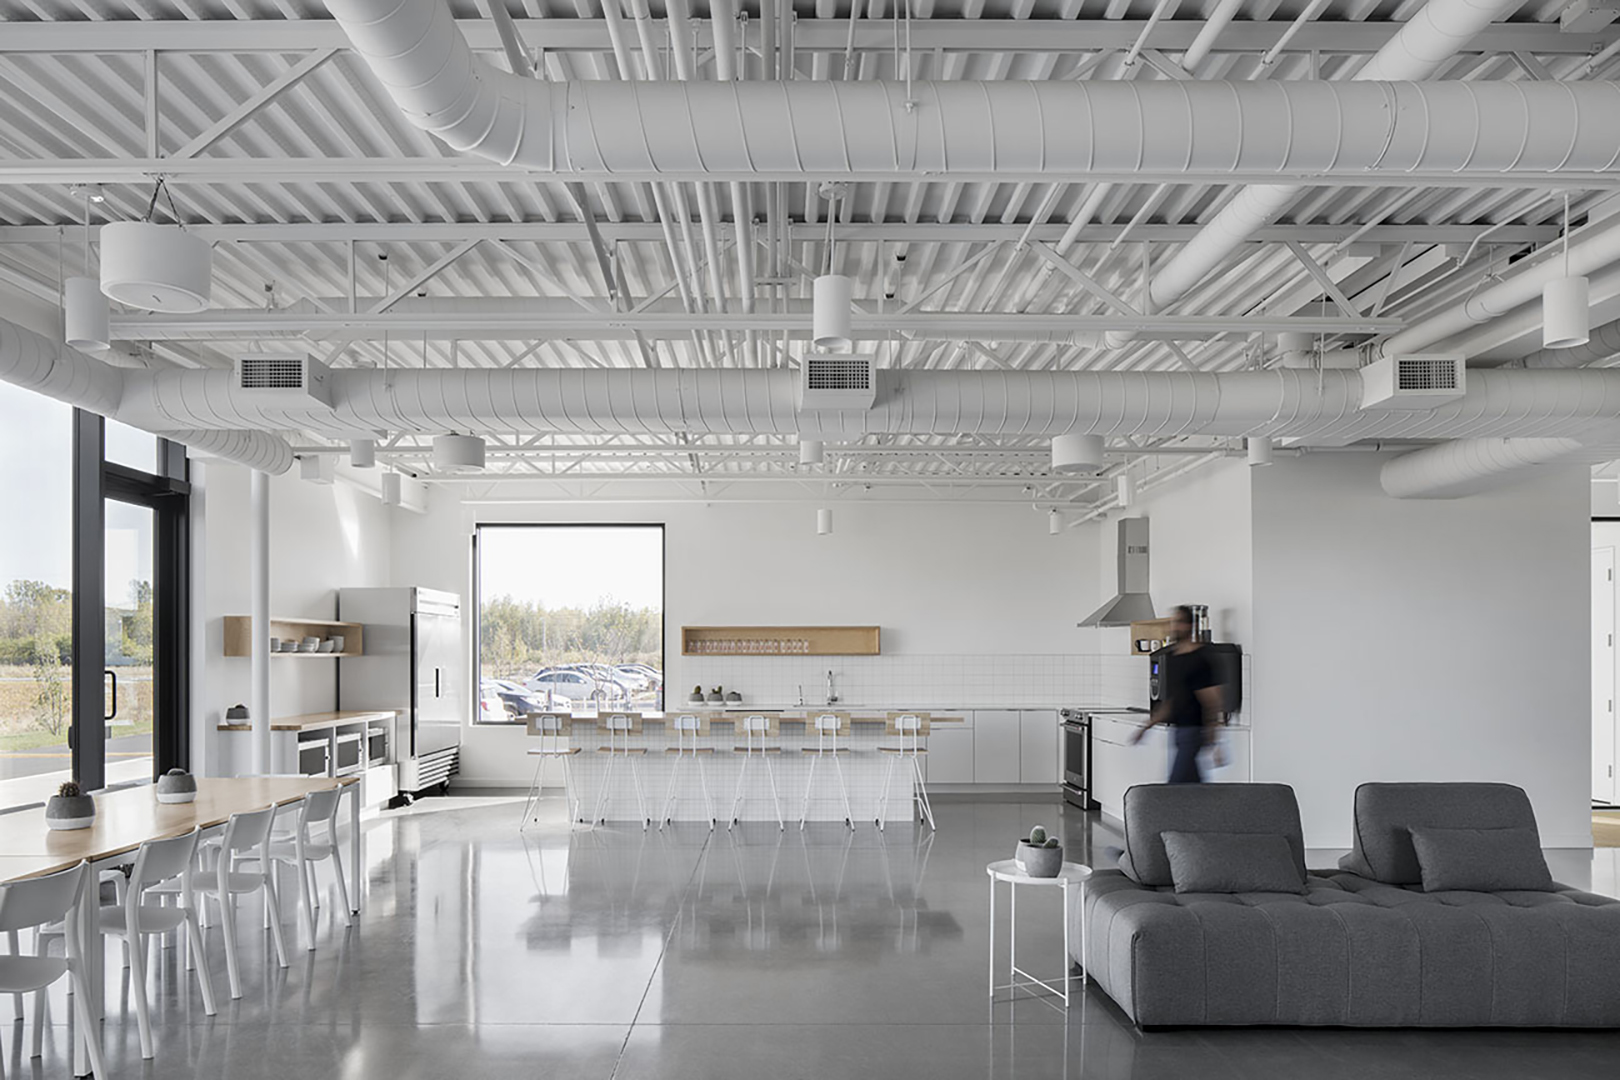 22-bureau-dassurance-lareau_6-2_maurice-martel-architecte-et-chavi-linda-fillion-design_adrien-williams_01